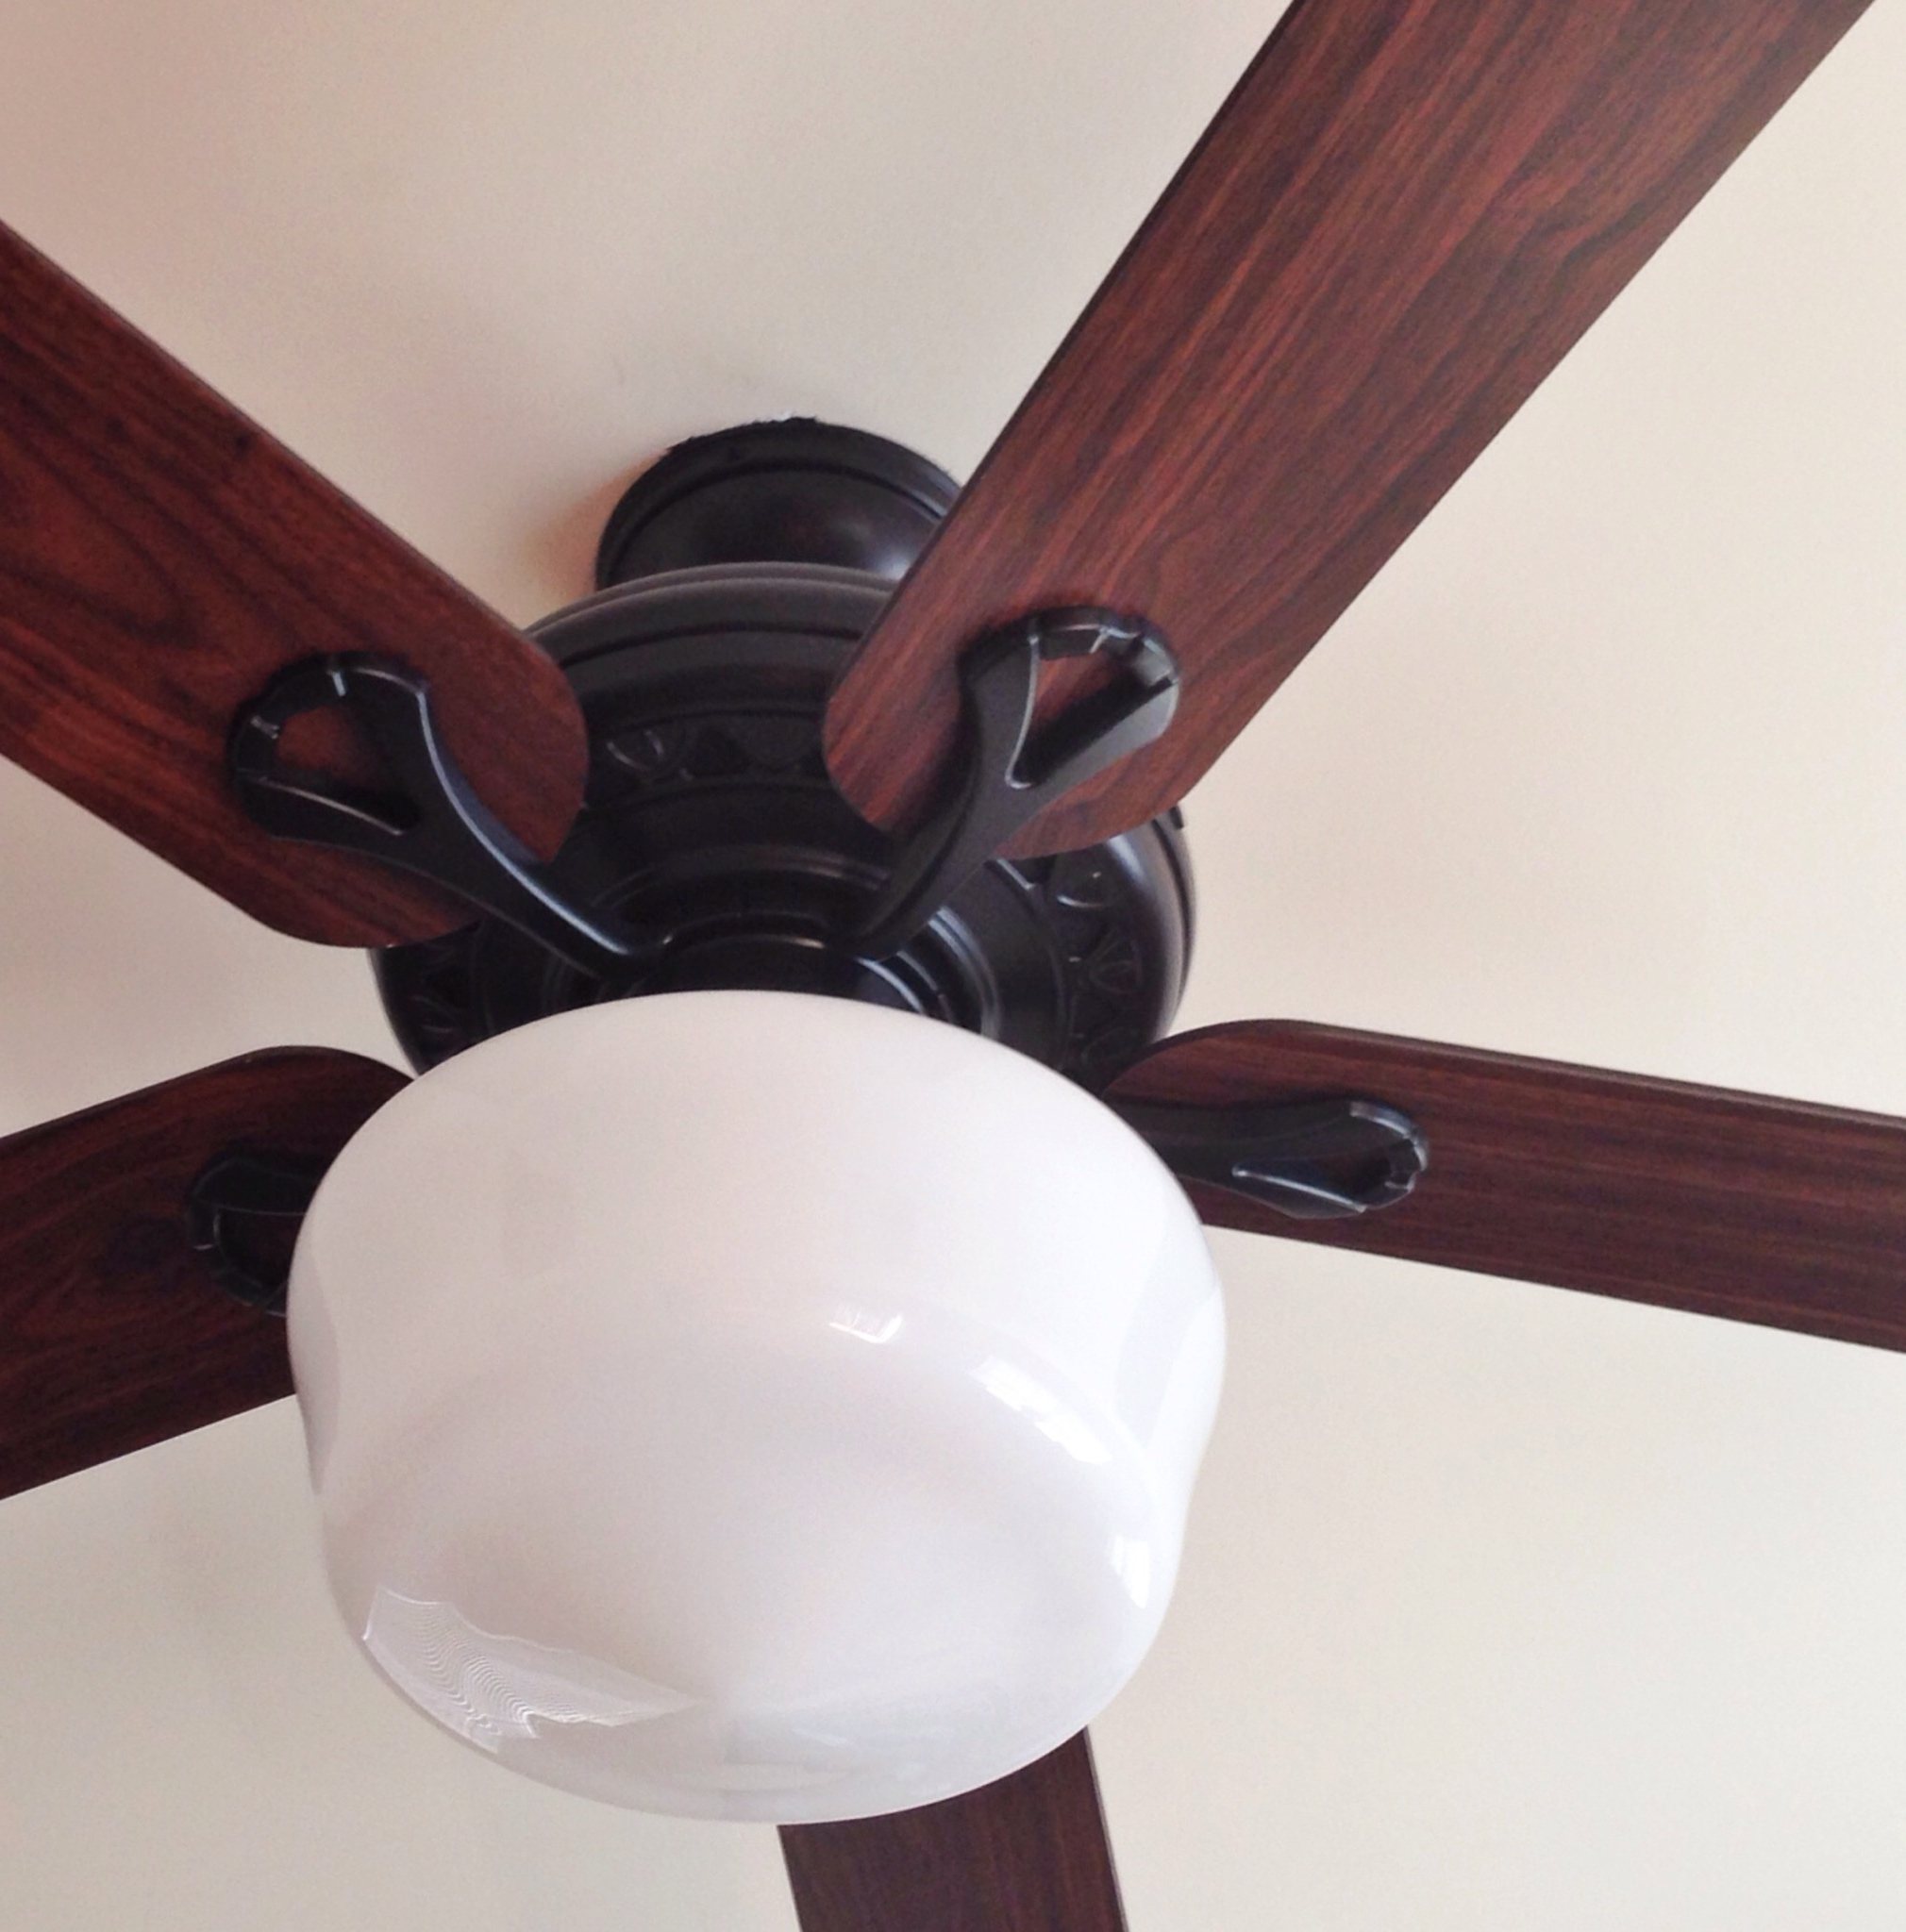 Ceiling Fan With Schoolhouse Light Luxury Home Depot Ceiling Fans Regarding Well Liked Outdoor Ceiling Fans With Schoolhouse Light (View 20 of 20)